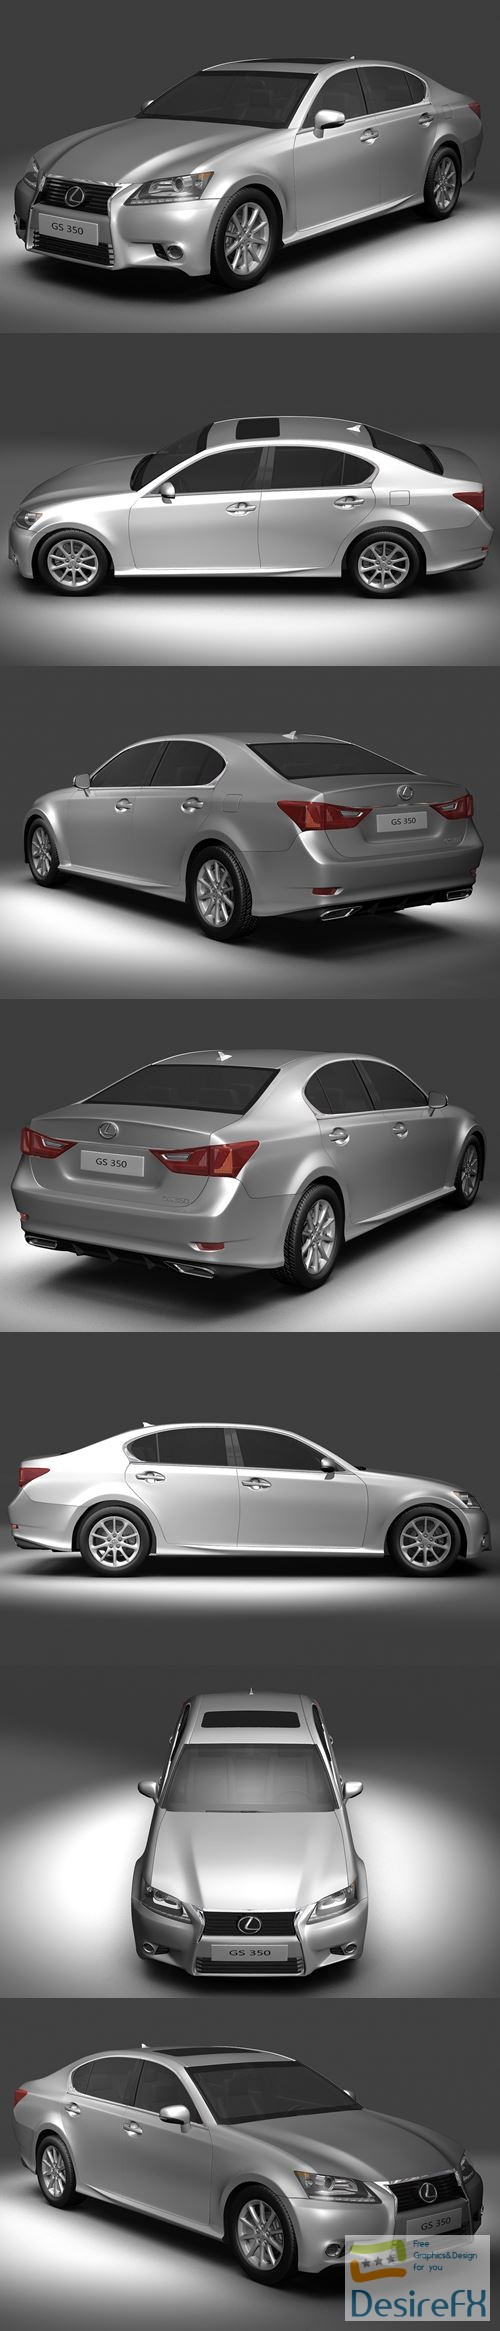 Lexus GS350 2013 3D Model